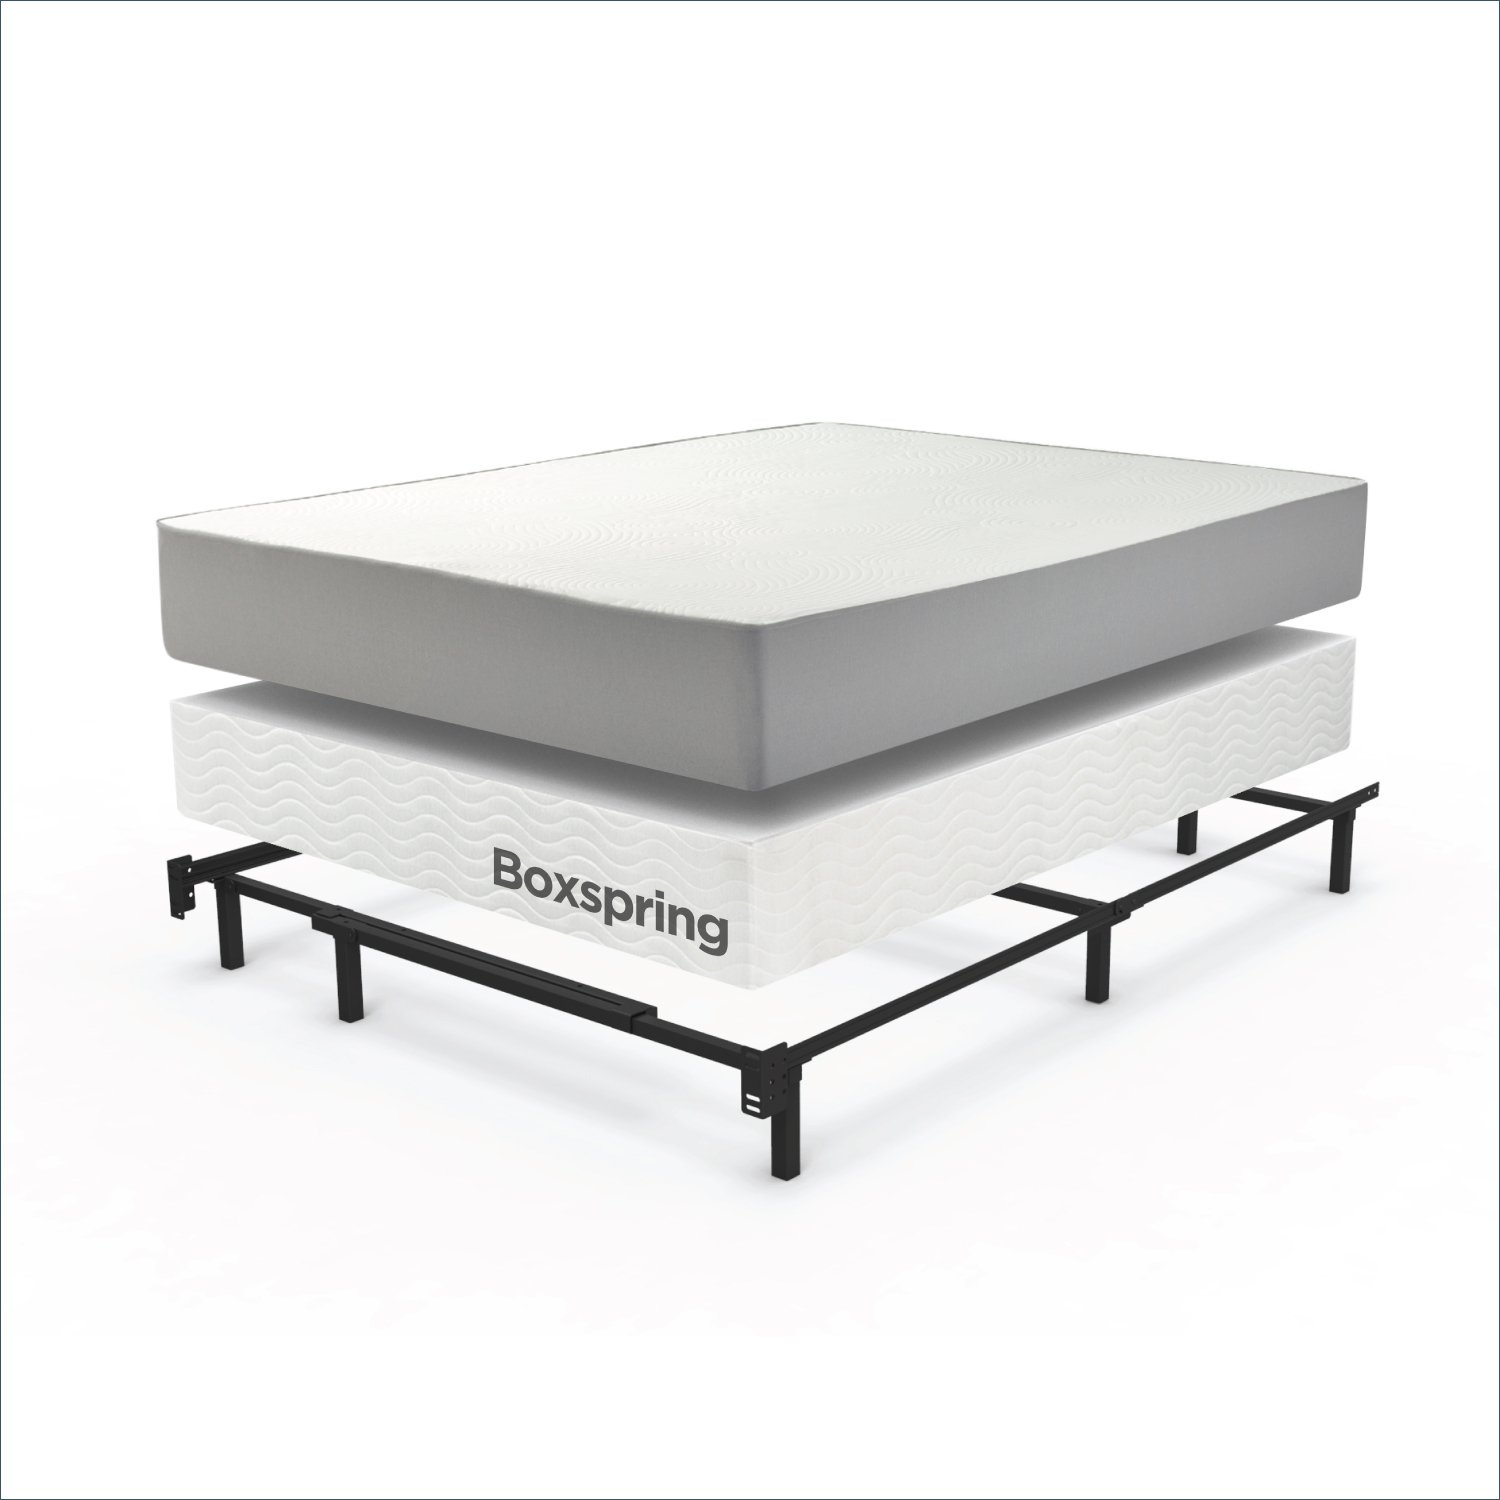 Zinus Compack 9-Leg Support Bed Frame, for Box Spring & Mattress Set, King by Zinus (Image #3)